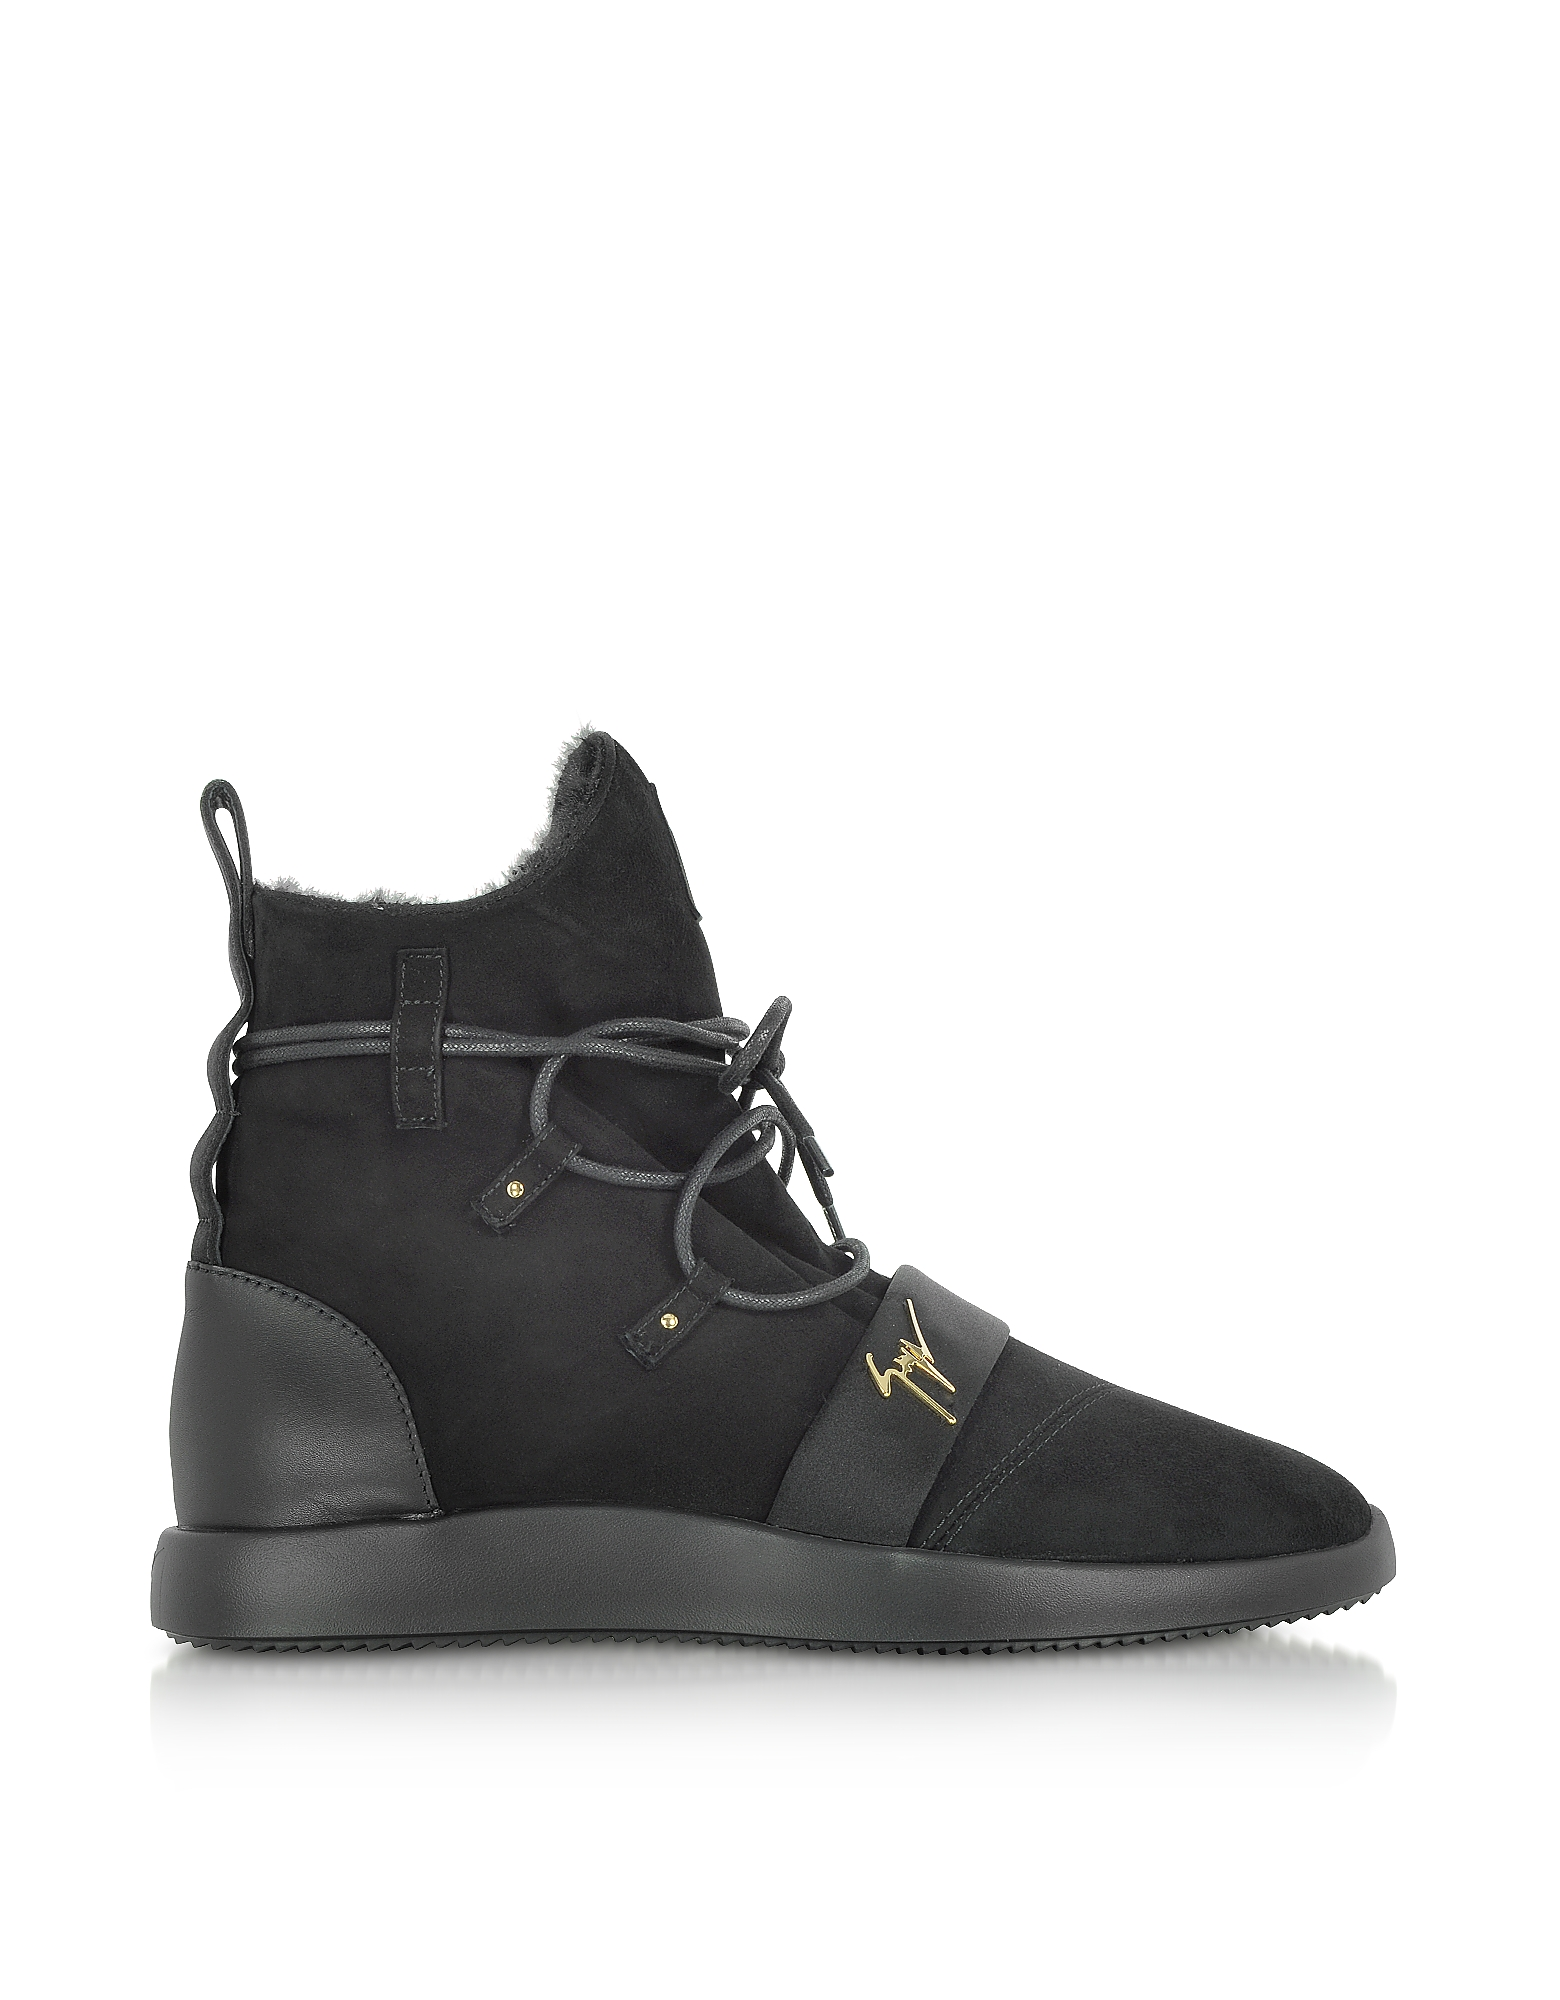 Giuseppe Zanotti Shoes, Black Suede High Top Sneakers